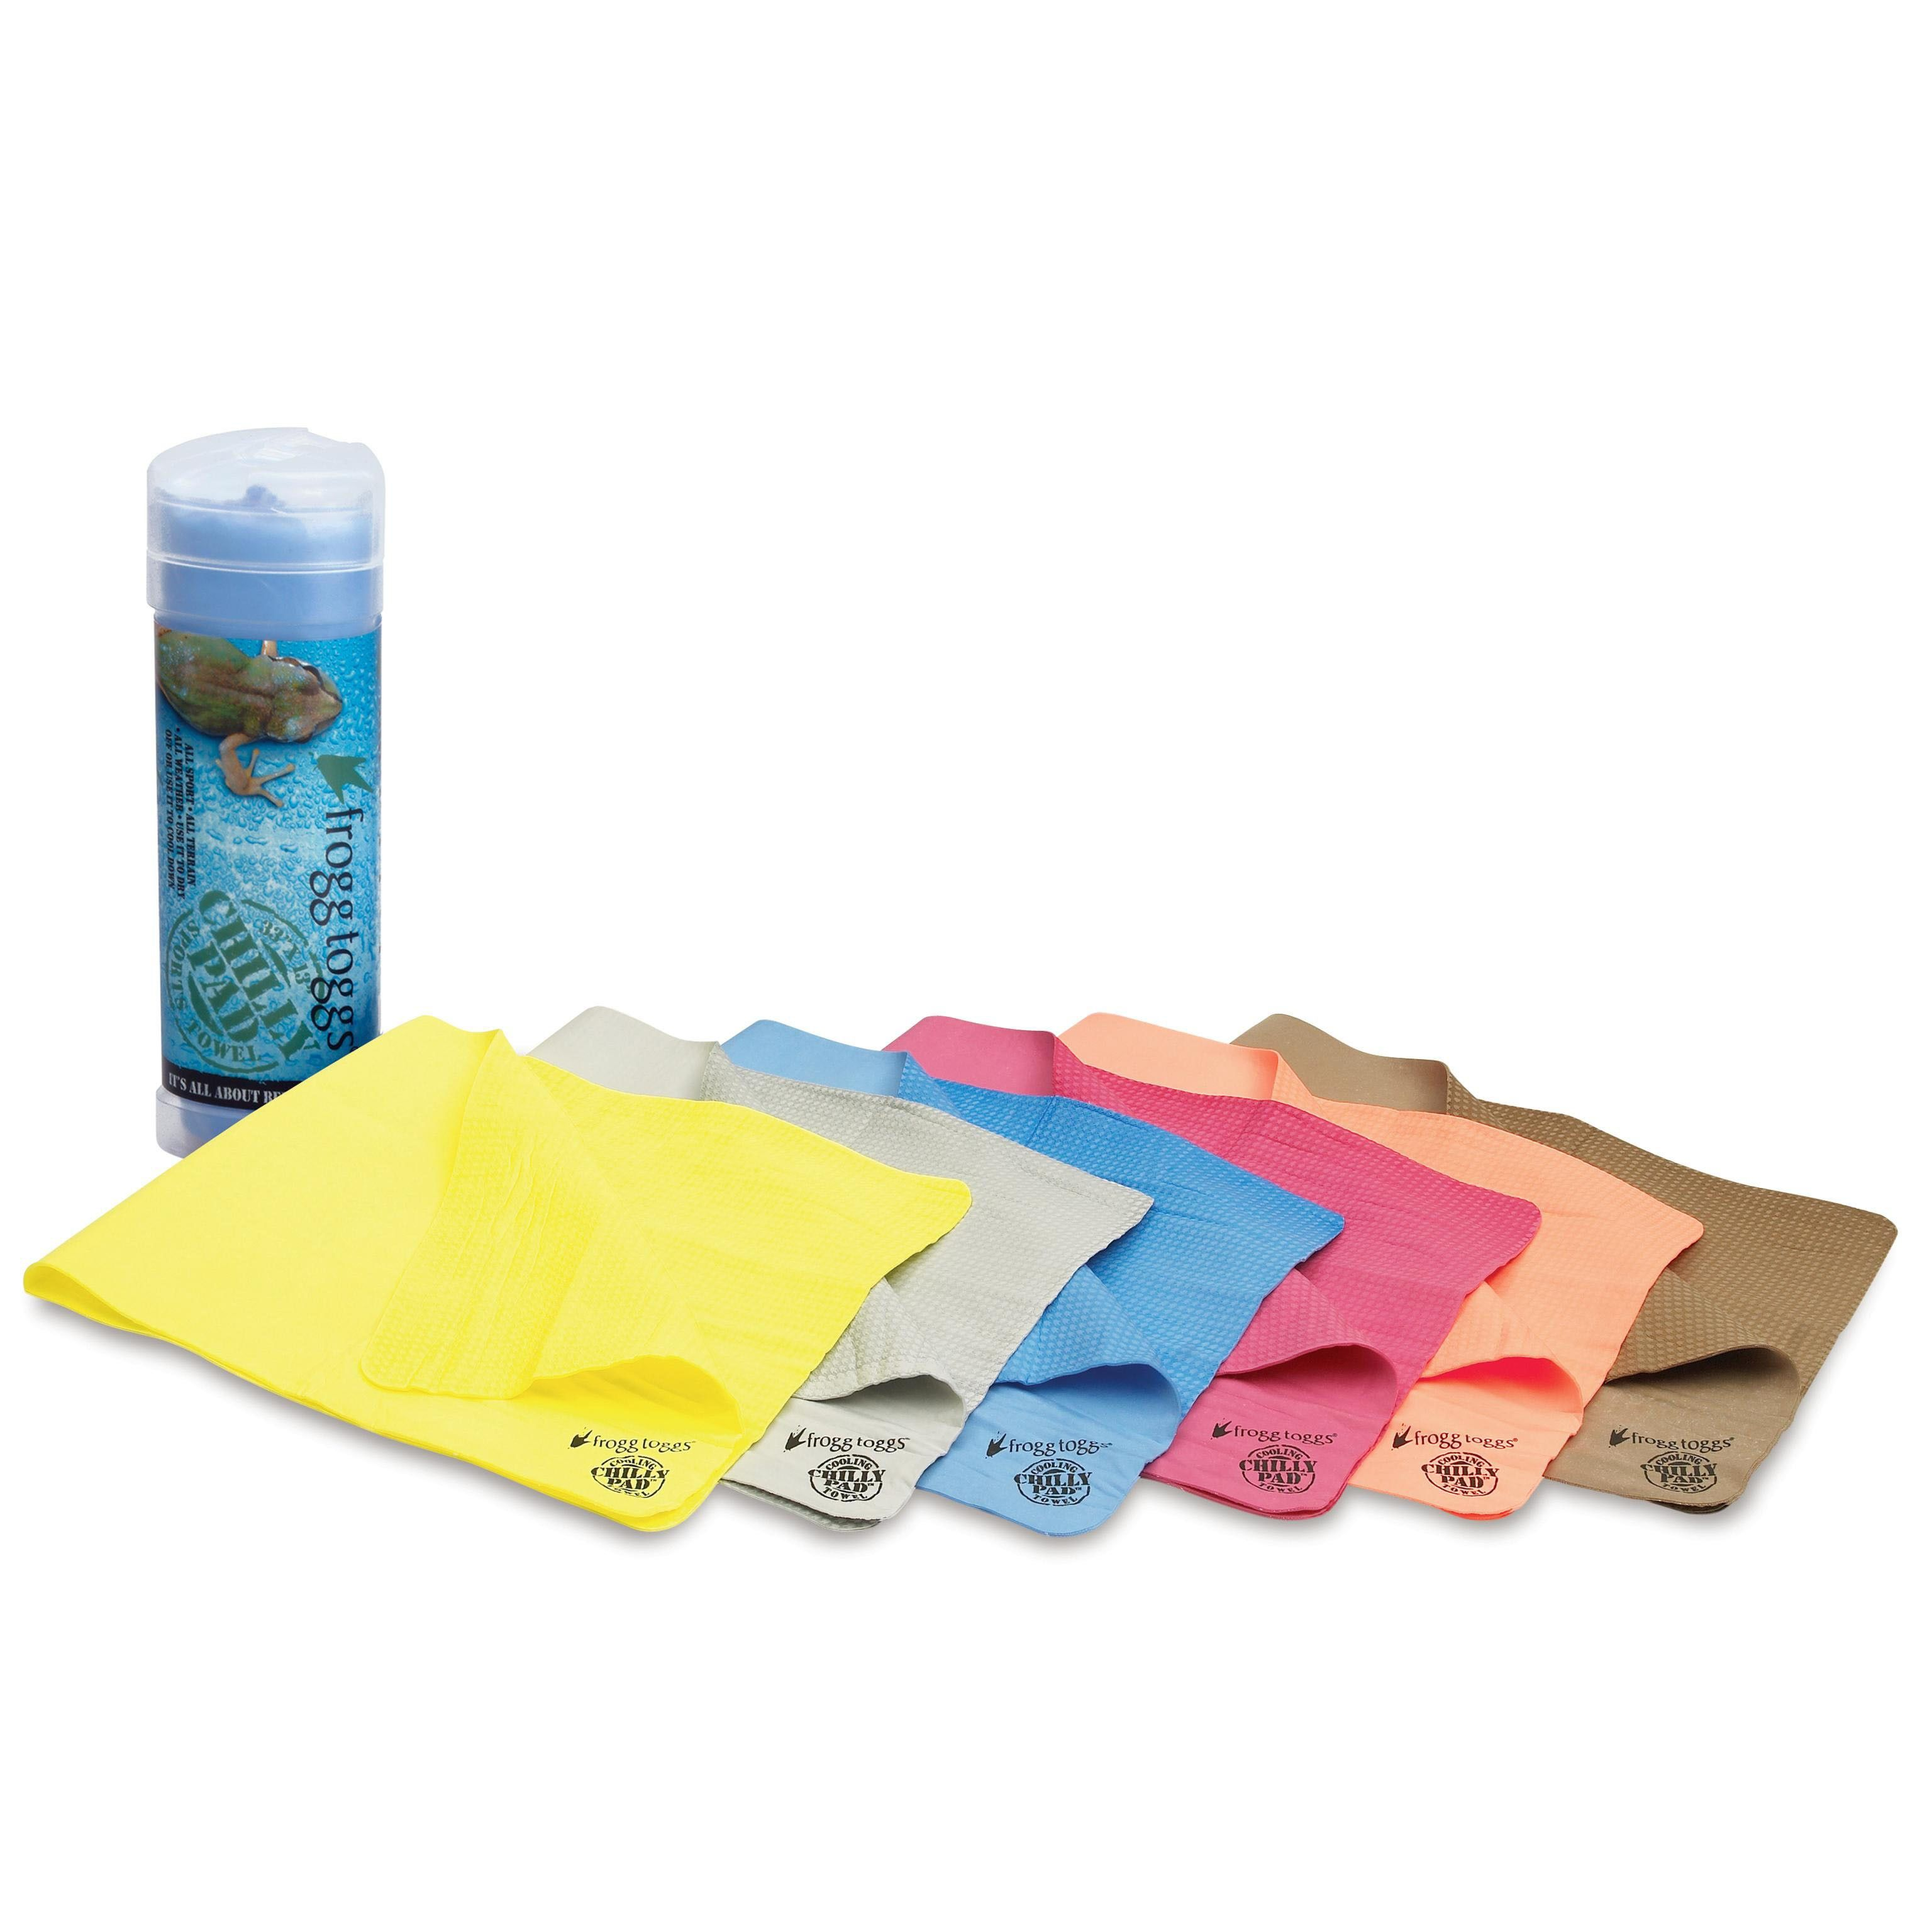 Frogg Toggs Chilly Pad Cooling Towel Safety Girl Towel